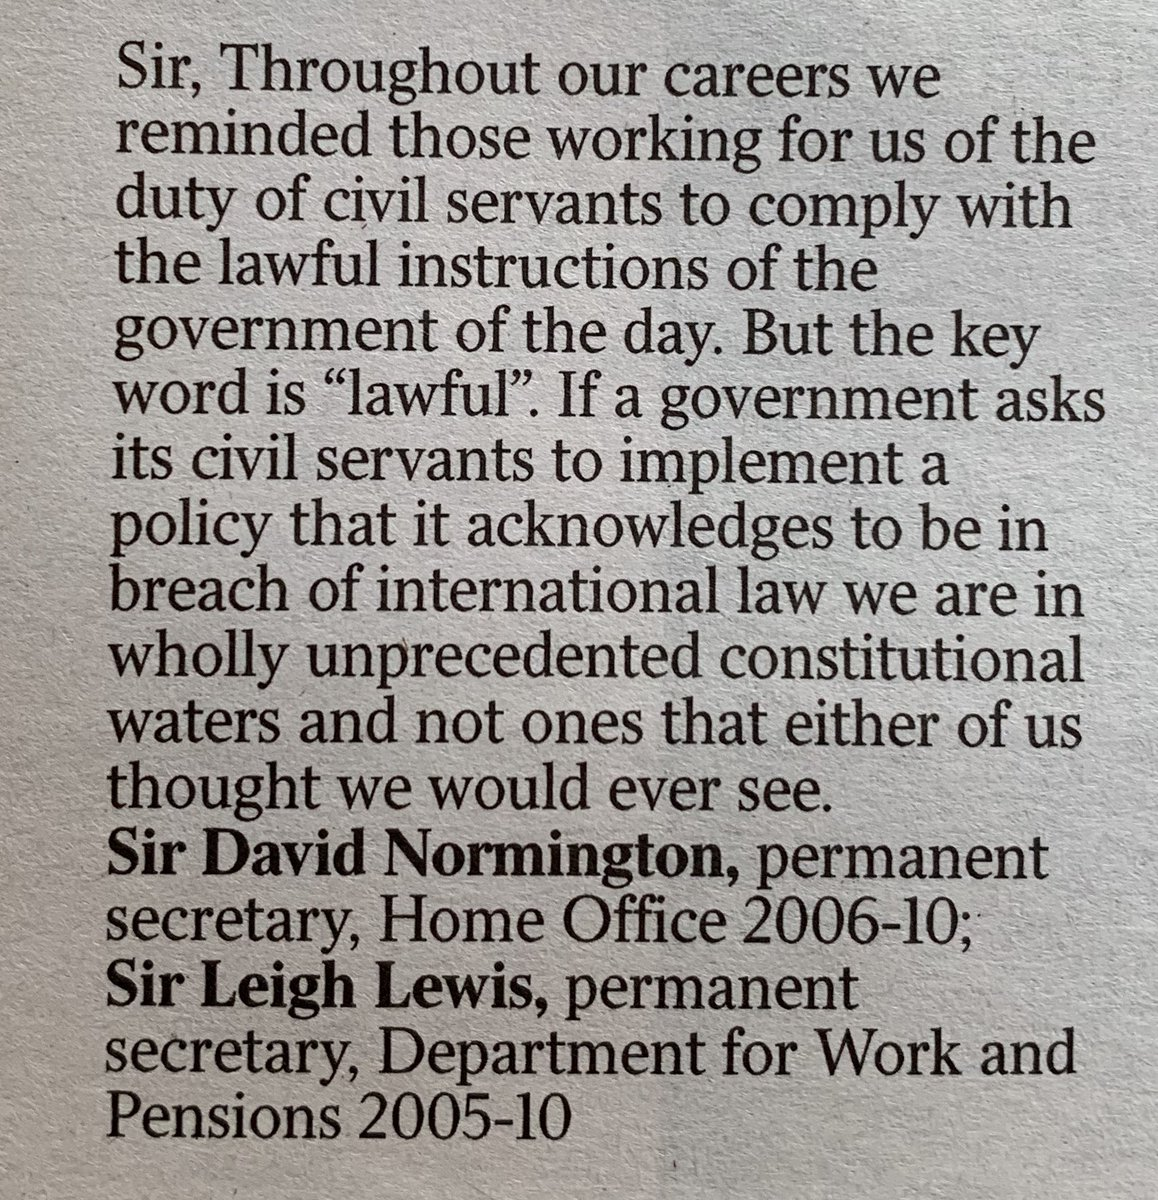 letter to The Times https://t.co/5ZPMilm1HD